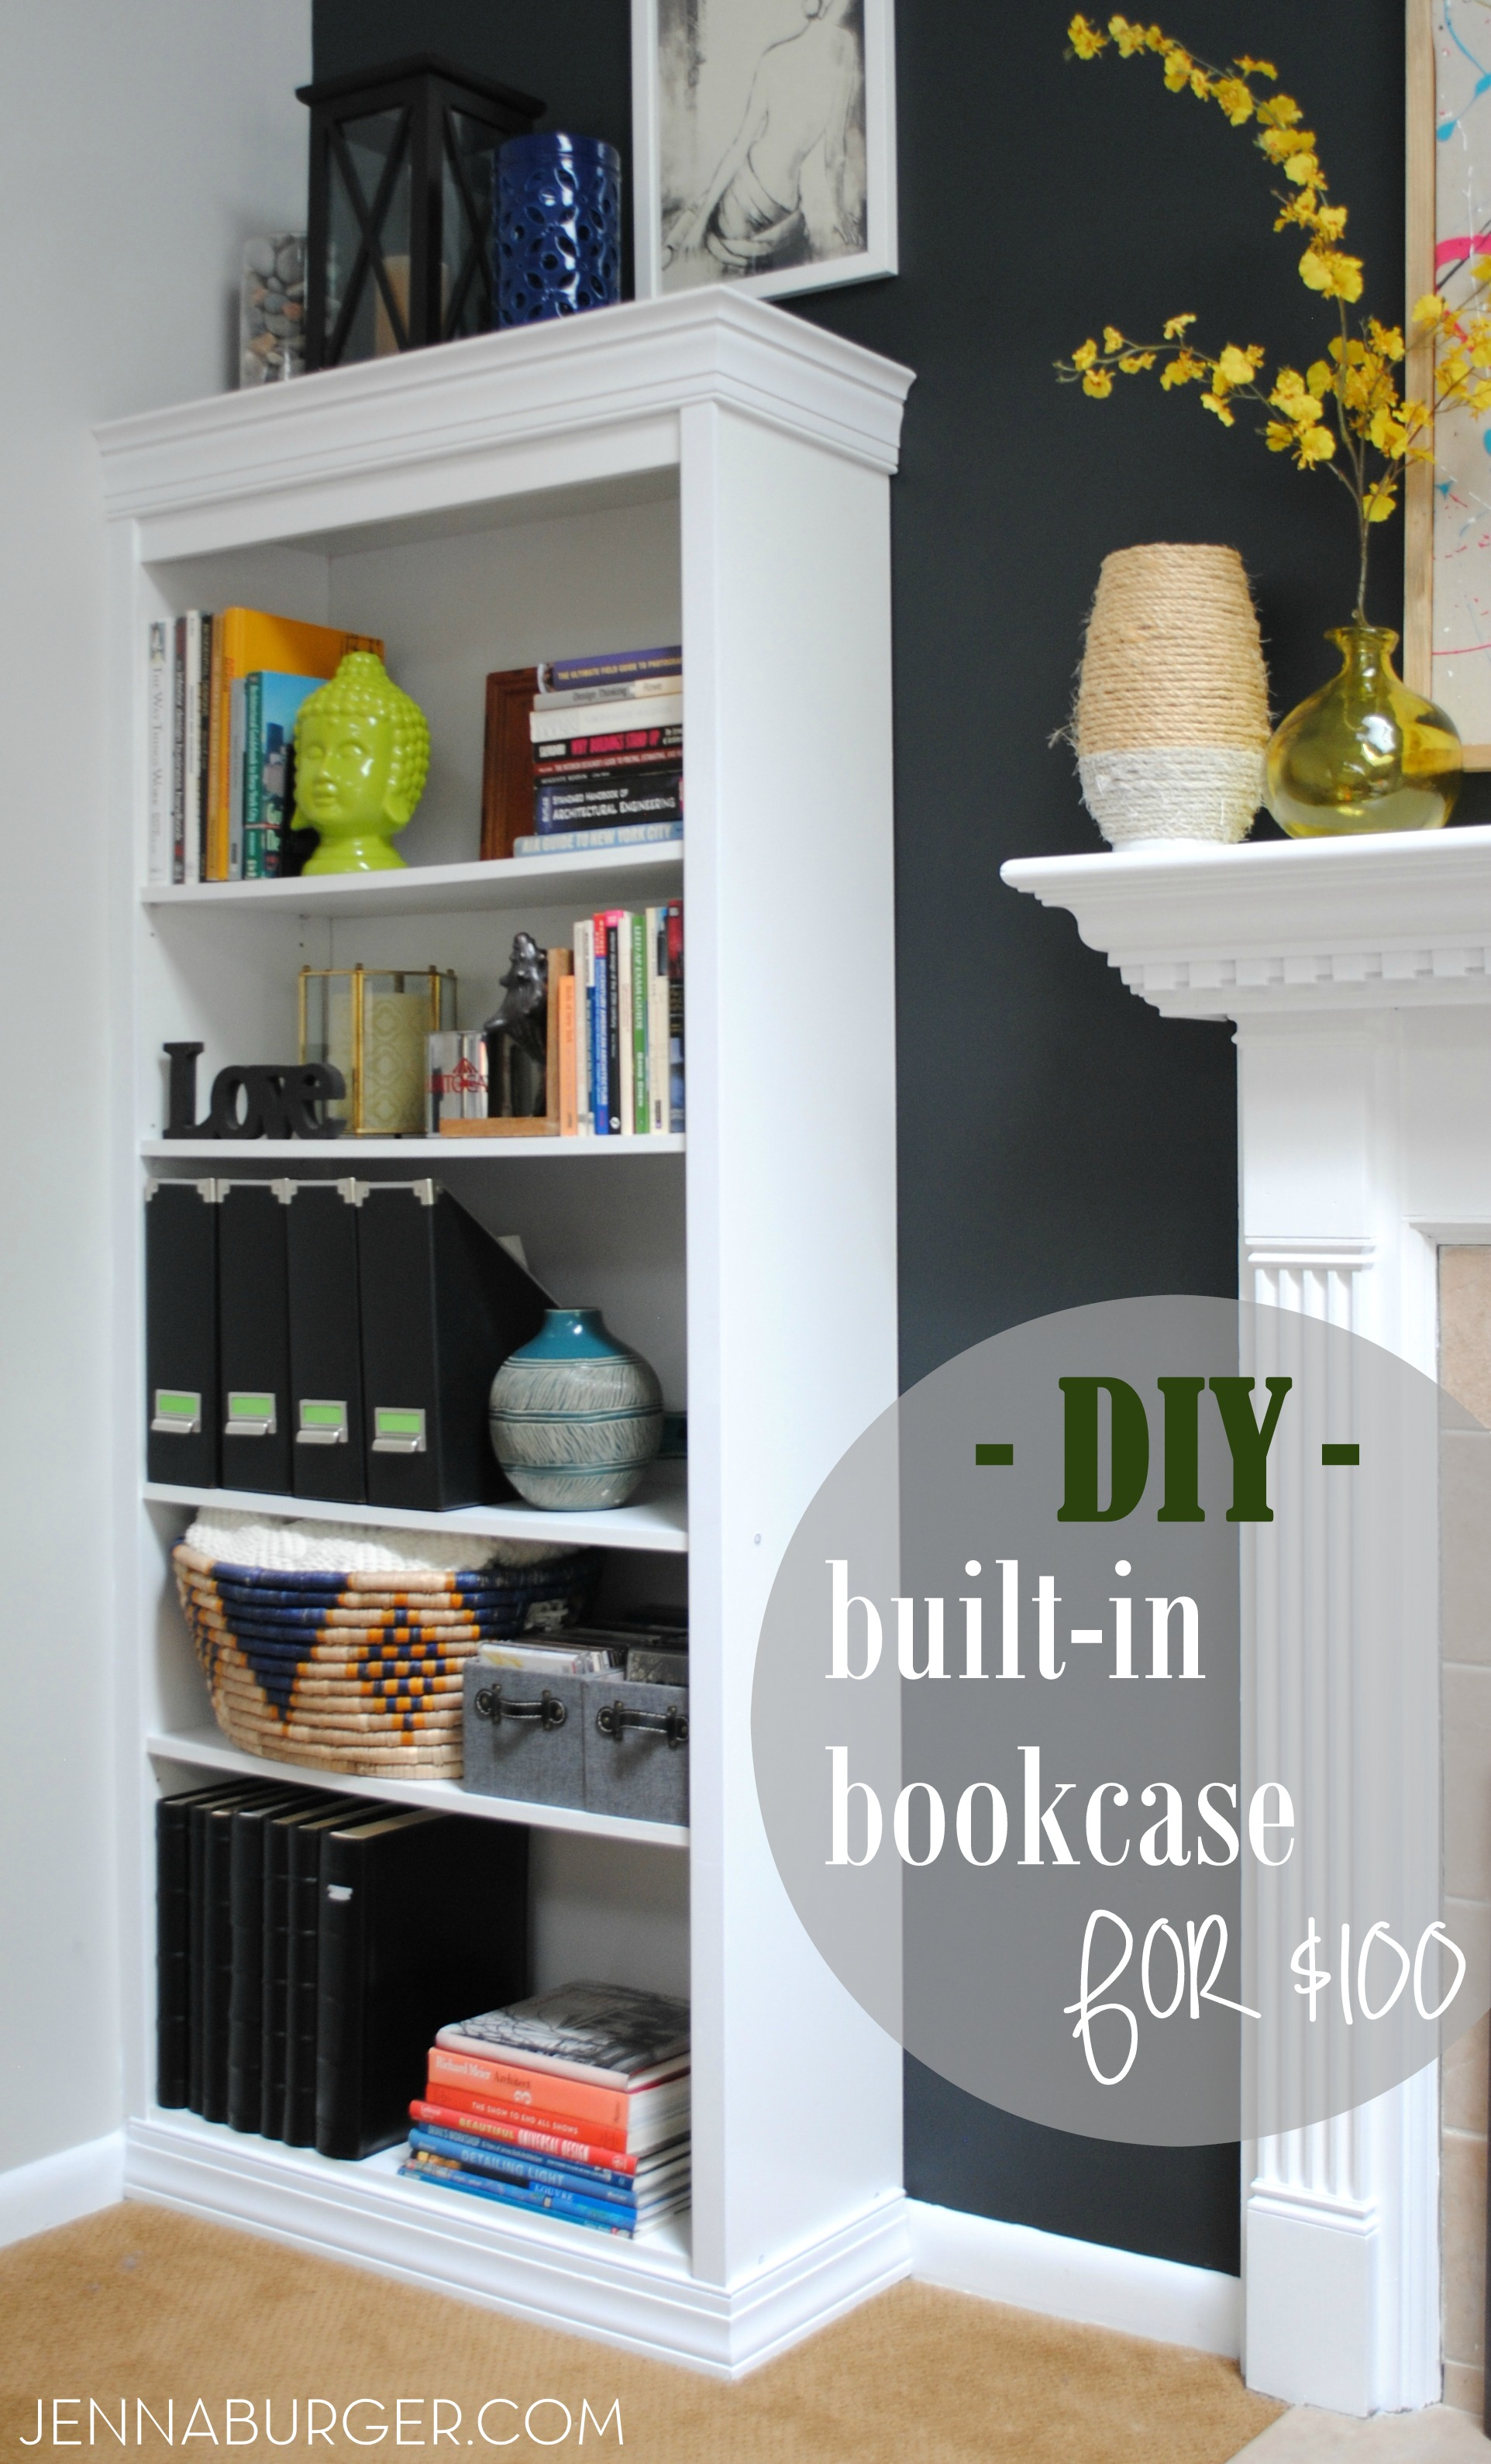 How-To Make A Laminate Bookcase Look Like A Built-In